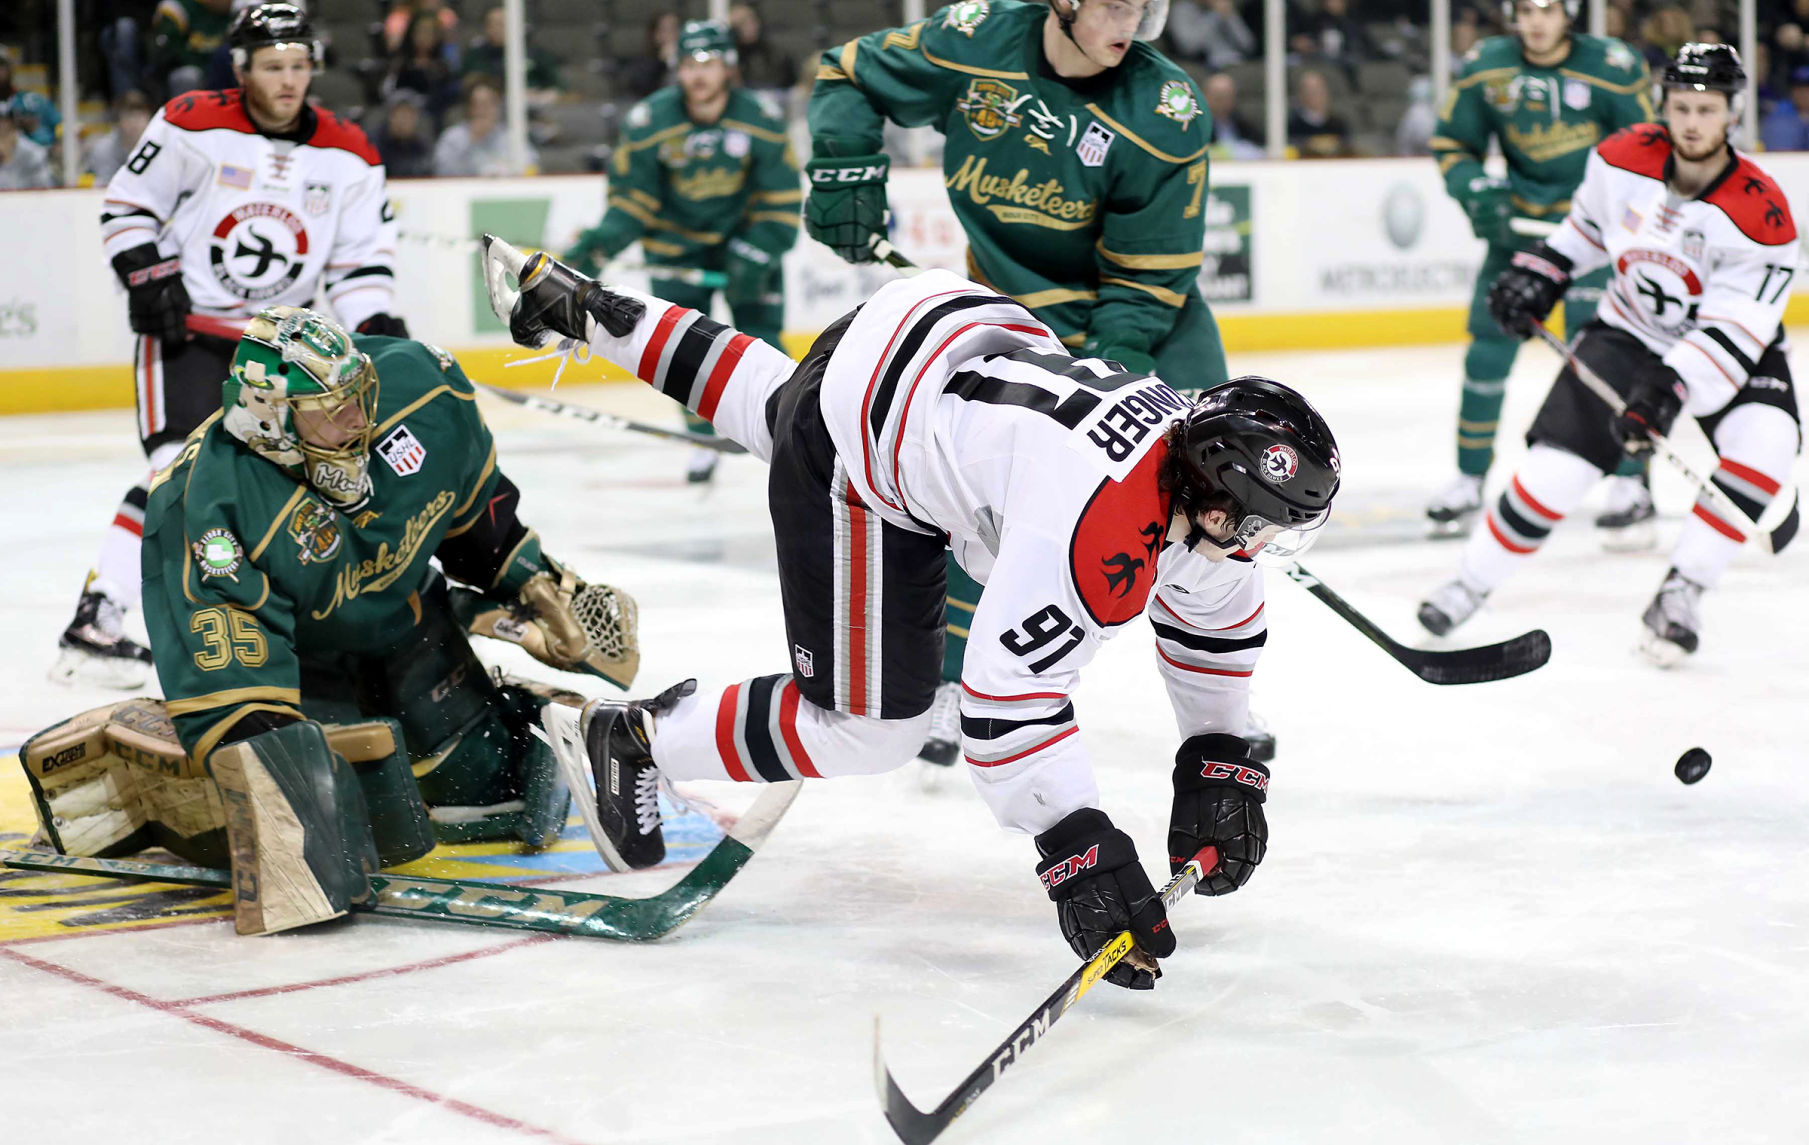 USHL: Mistake-prone Hawks Fall To Musketeers In Game 1, 5-2